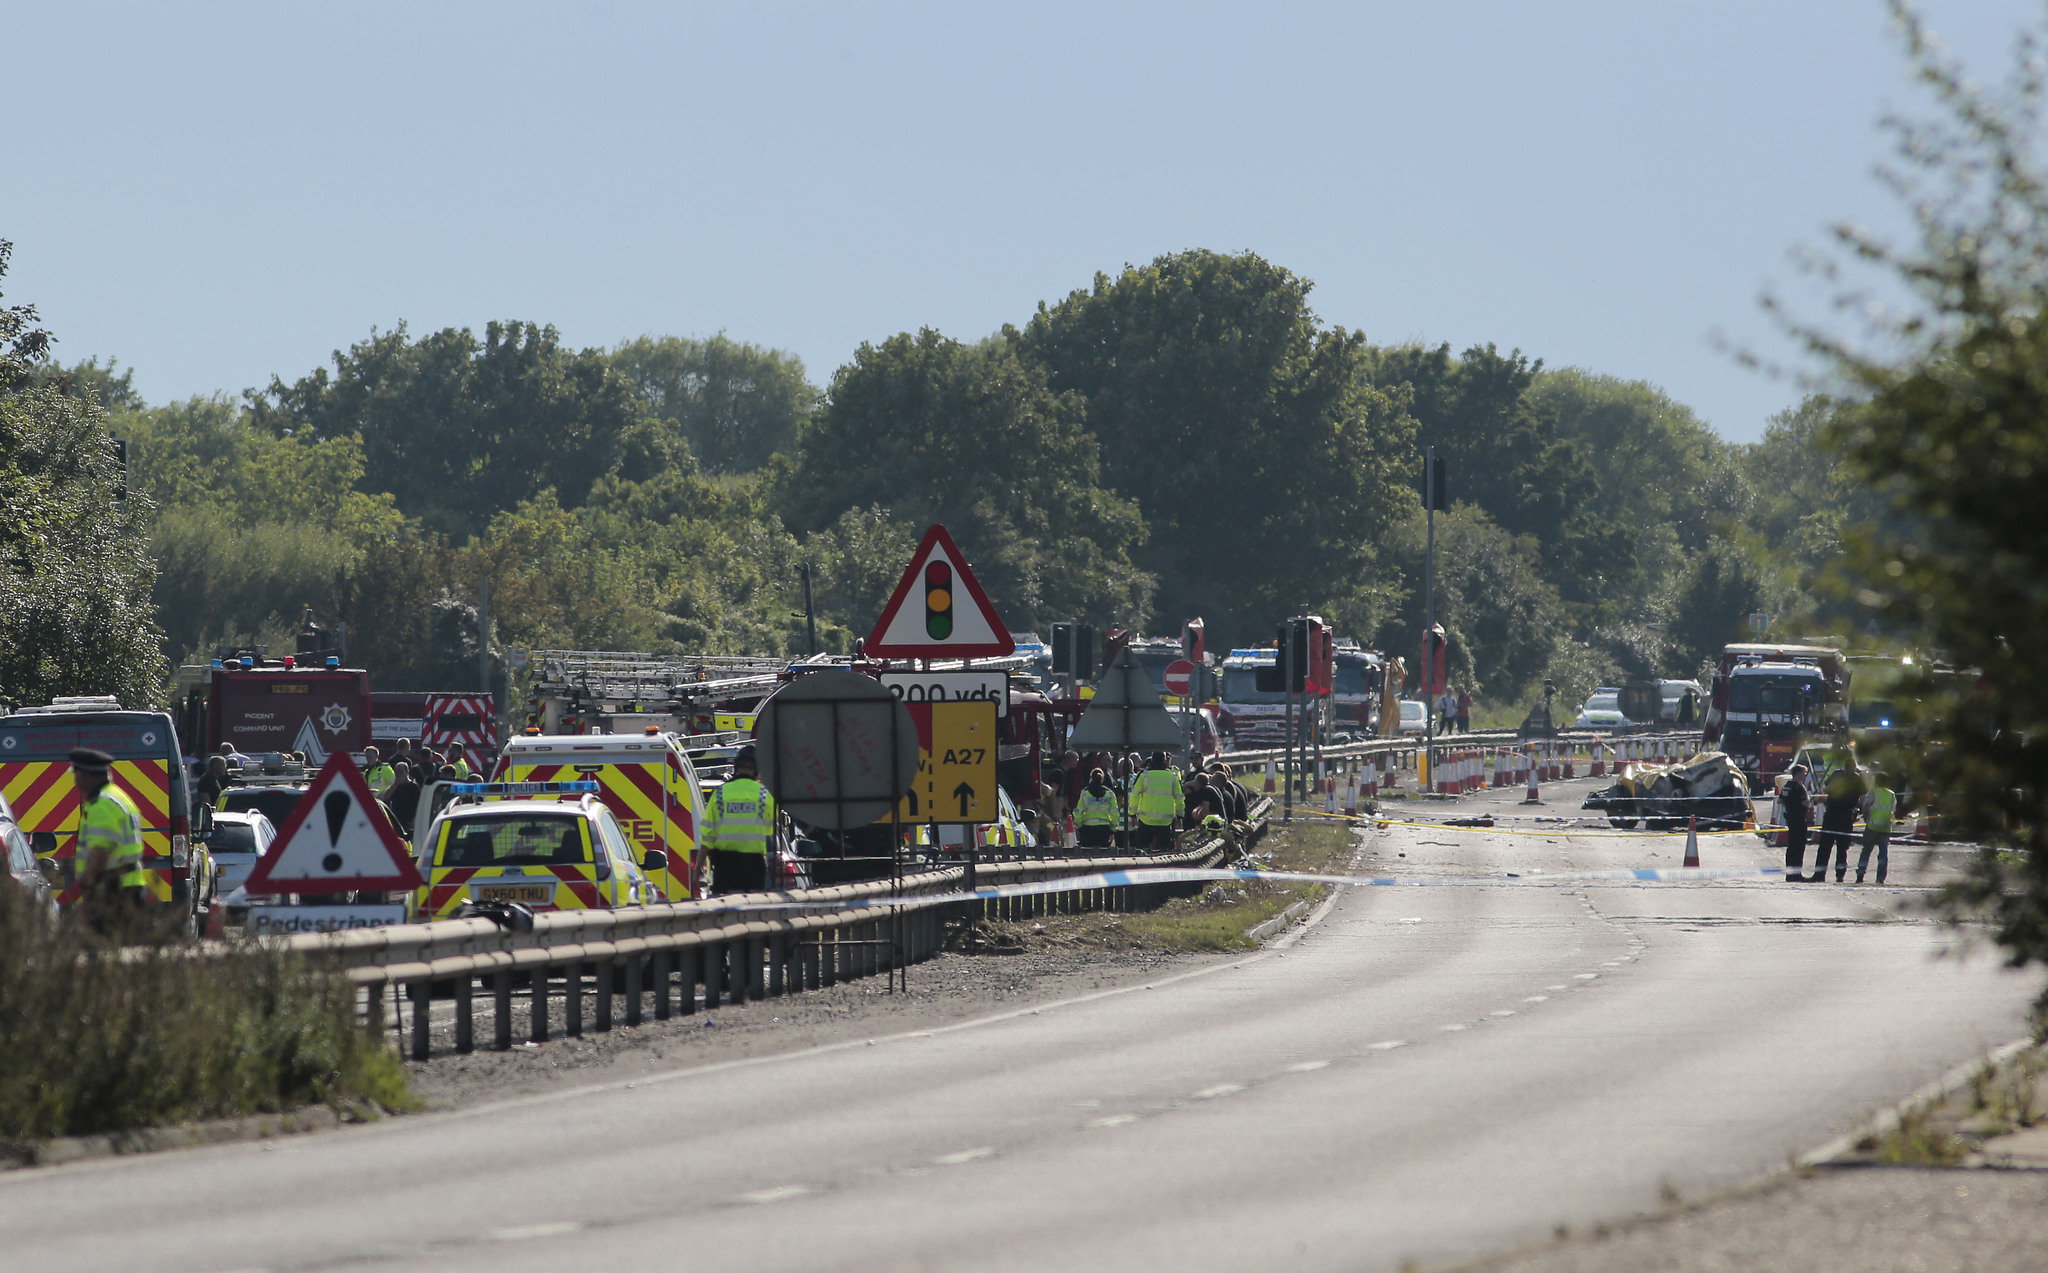 plane crash video a27 with 7 Dead After Fighter Jet Parti on 430093833145141931 further Family Personal Trainer 24 Killed Jet Crash Returning Australia Left Panicked Facebook Posts Trying Hours Following Disaster also Just Yards Shoreham Air Disaster Fireball Planespotter Came Closest Death Survived furthermore Shoreham Airshow Plane Crash Driver BMW Escape Alive in addition Shoreham Airshow Plane Crash Disaster Sister S Torment Searches News Missing Brother.